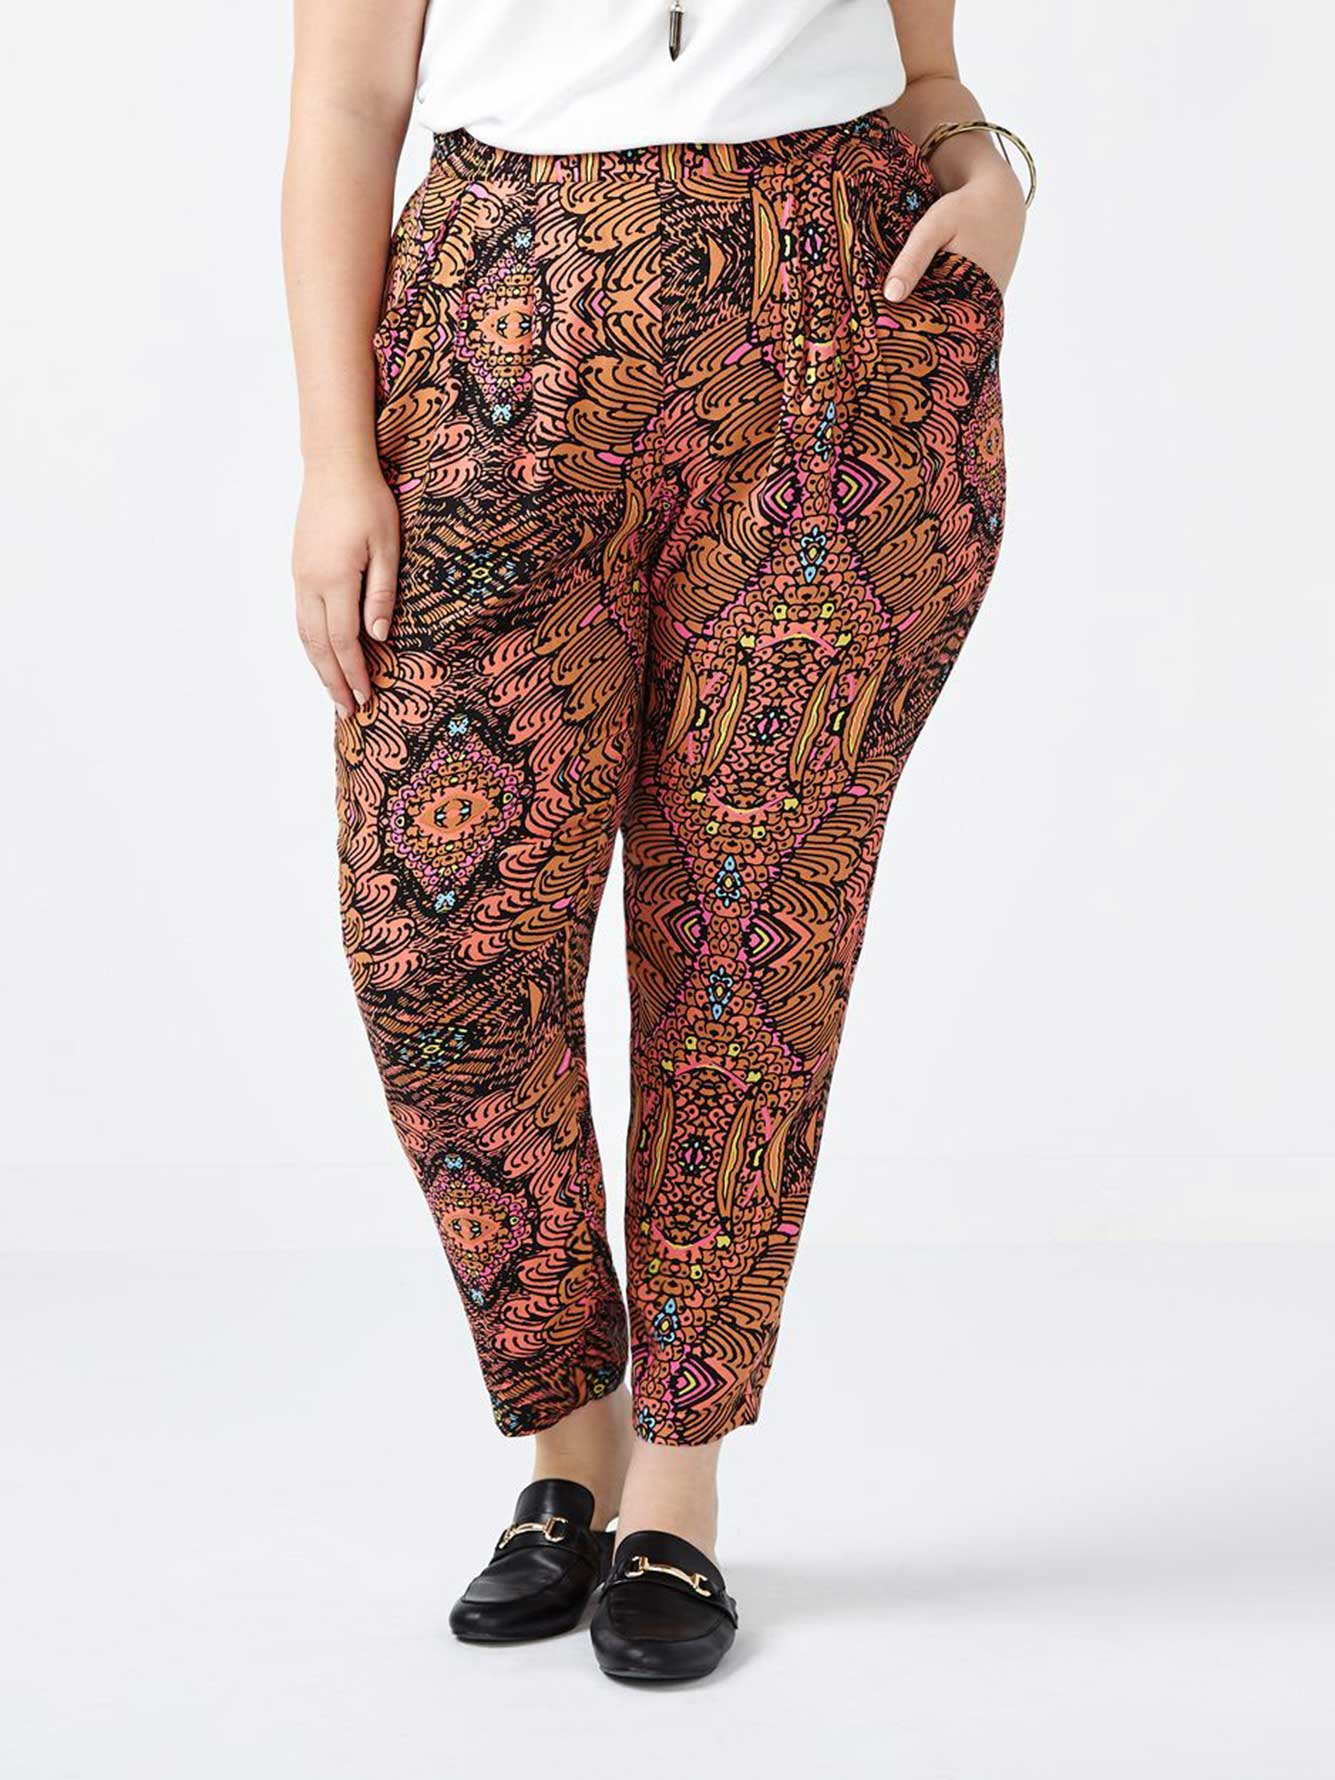 d246090c0d6ce MELISSA McCARTHY Printed Pull On Pant